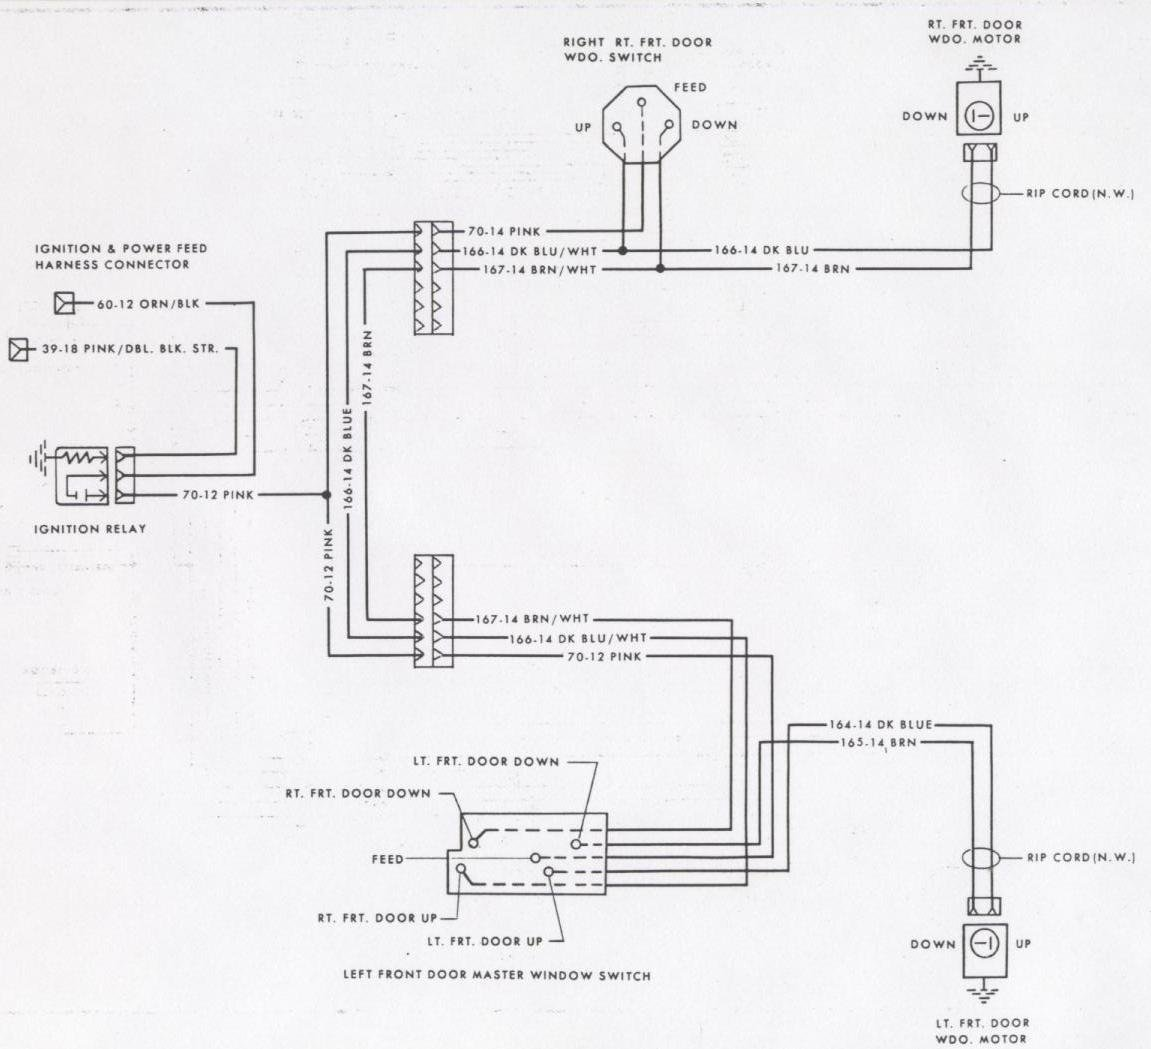 1972 mustang wiring harness diagram